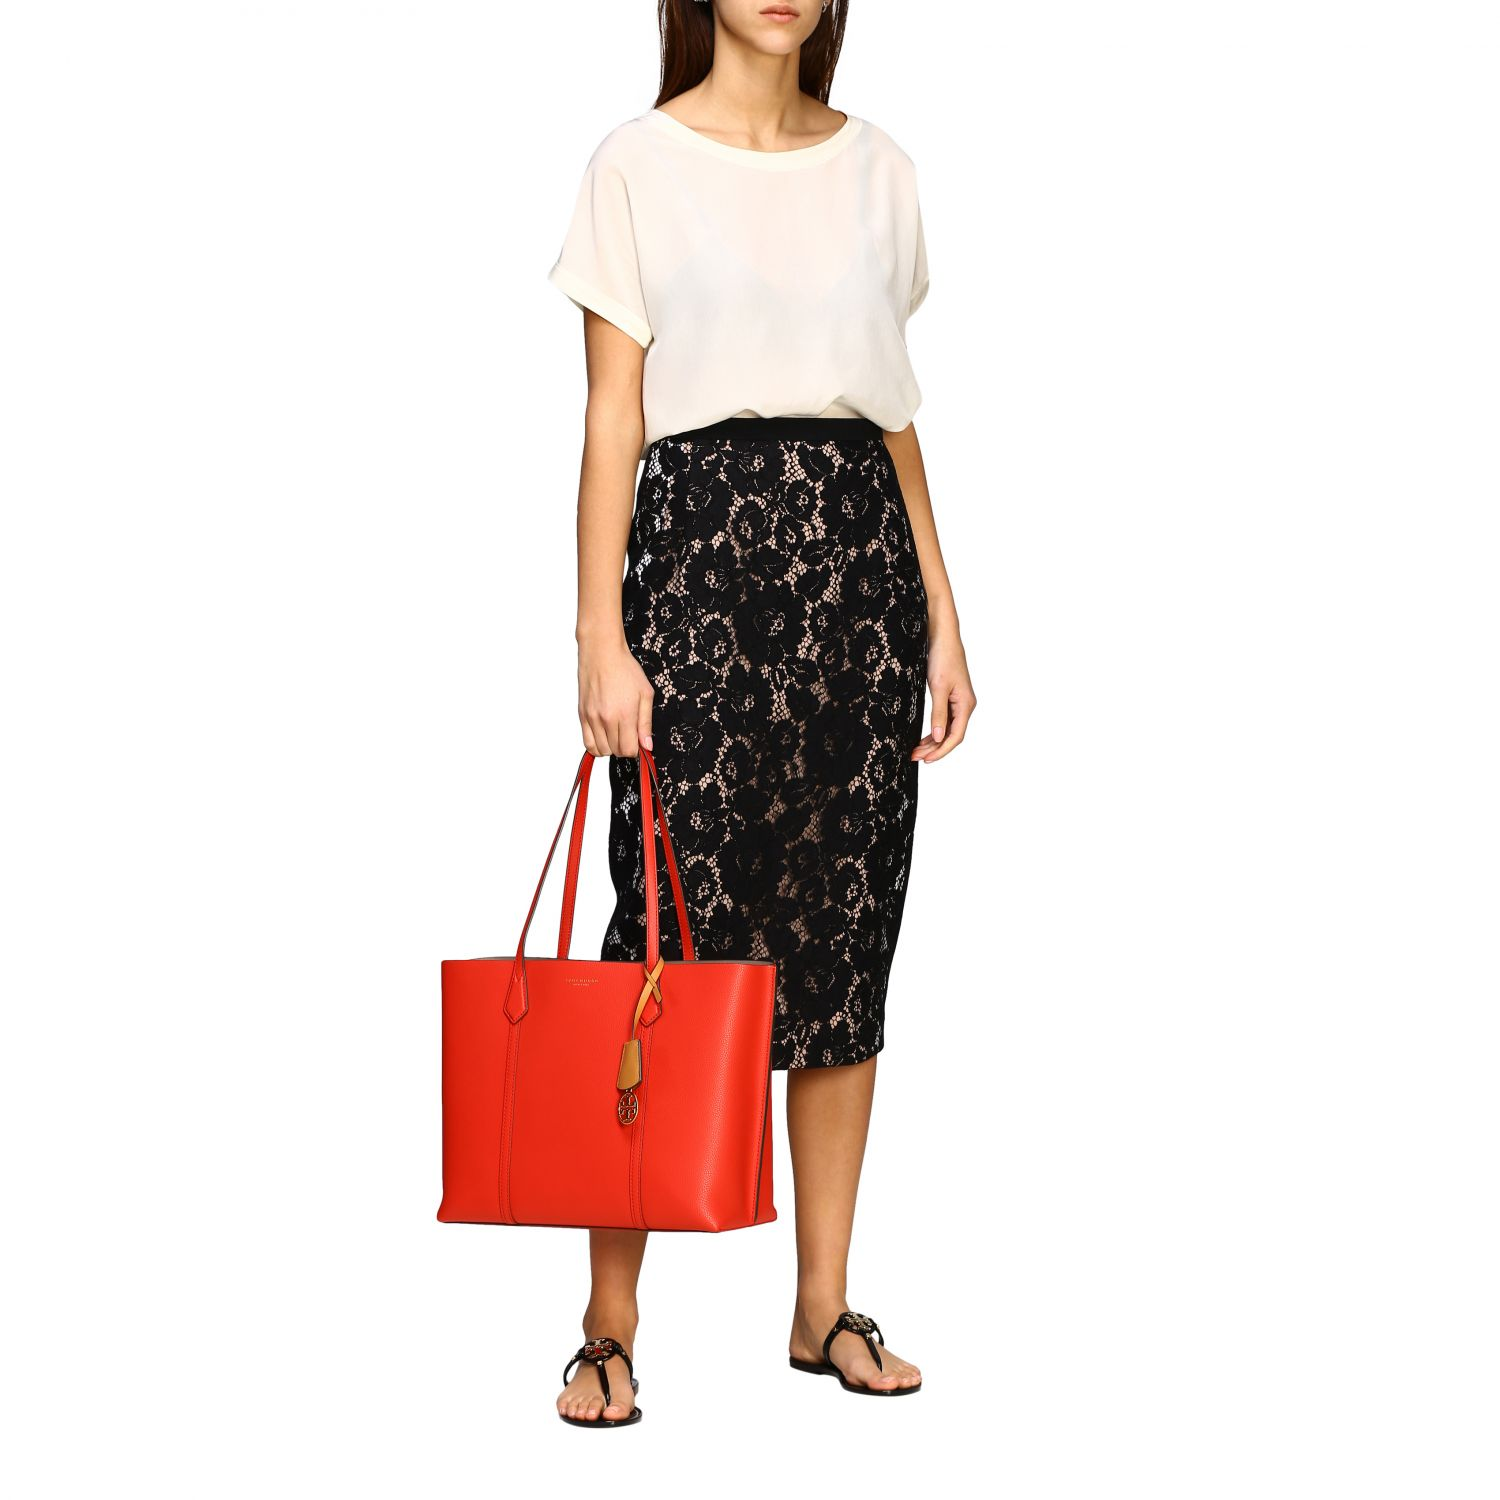 Perry Tory Burch tote bag in textured leather red 2